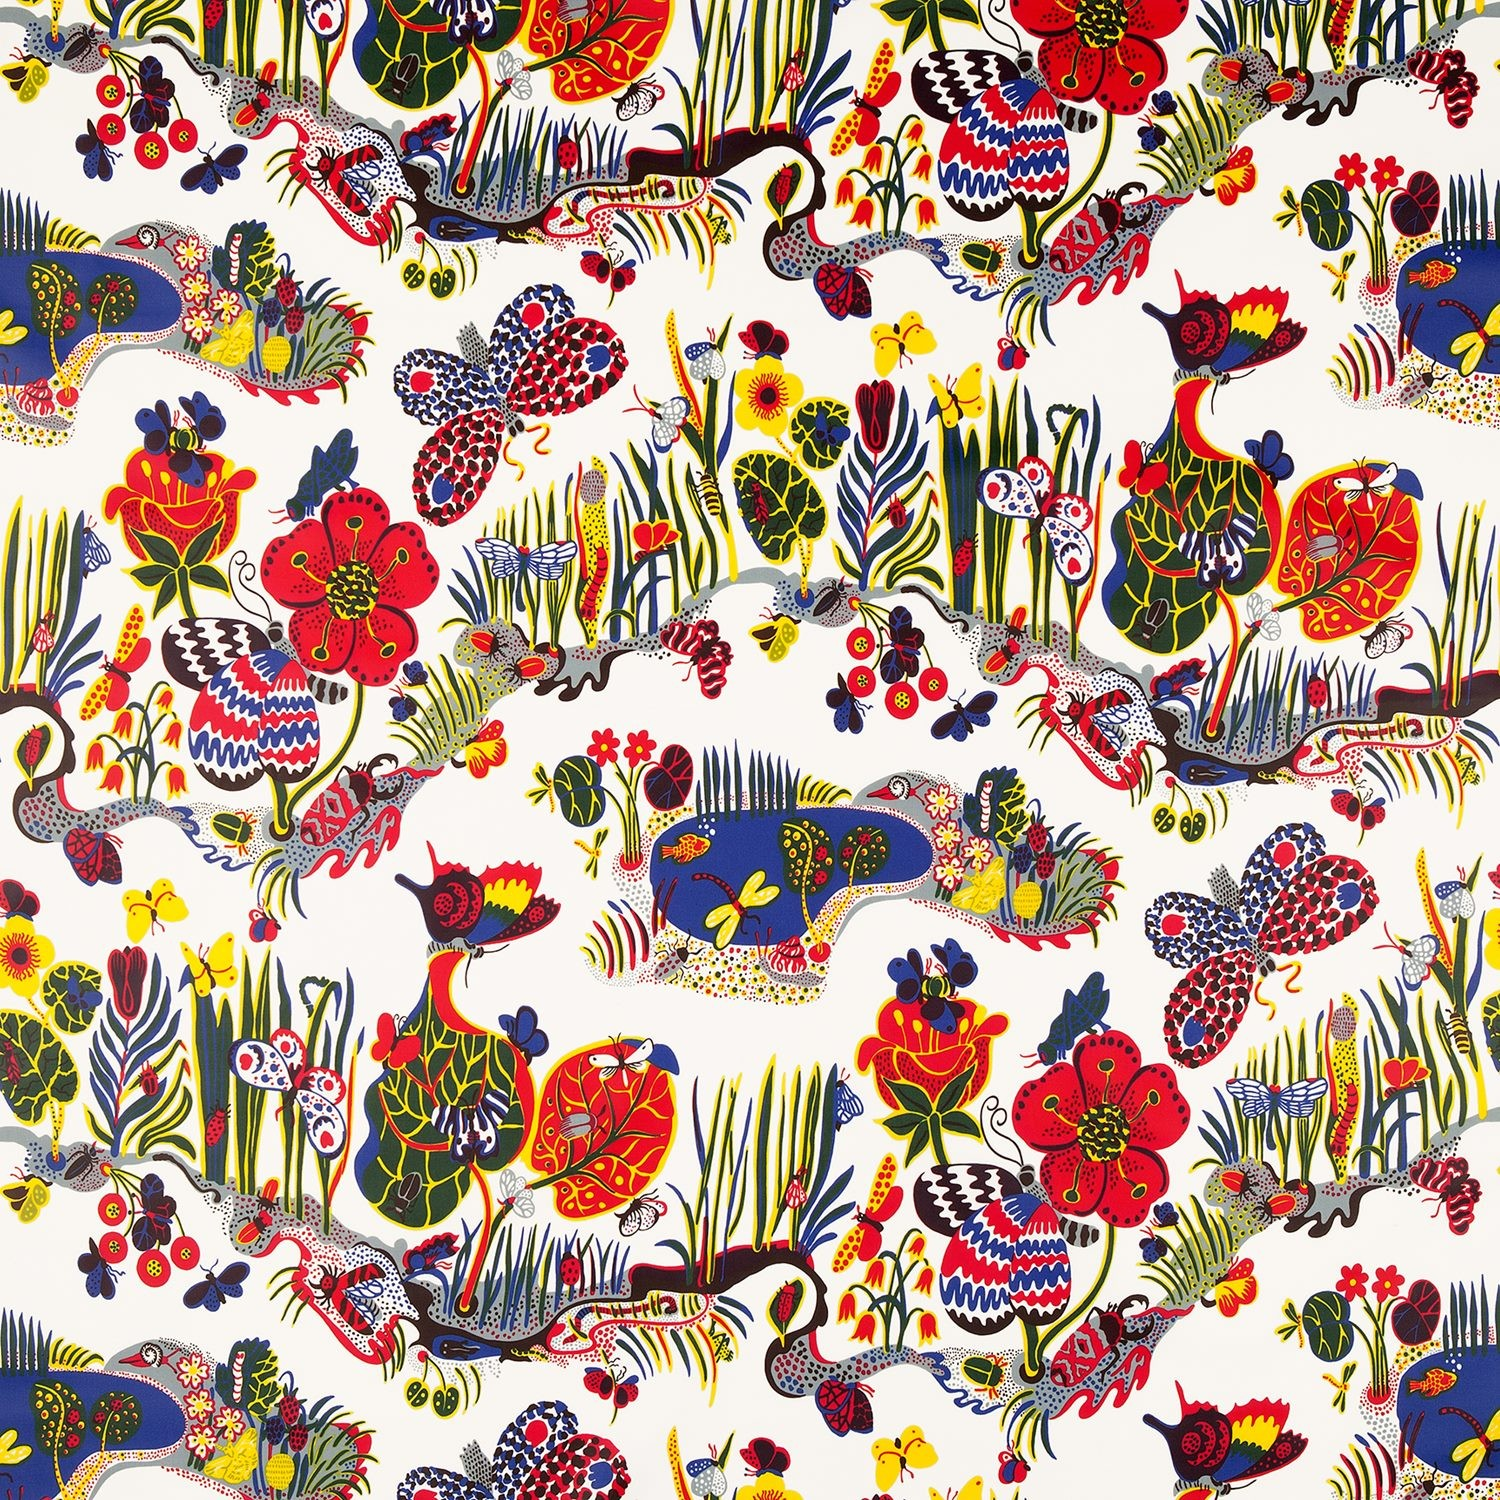 Wallpaper Dinding Flower Terbagus Untuk Fabric Sample butterfly Coated Cotton butterfly Josef Frank Of Wallpaper Dinding Flower Paling Indah Untuk Colorful Flower Wallpaper 3d Best Hd Wallpapers